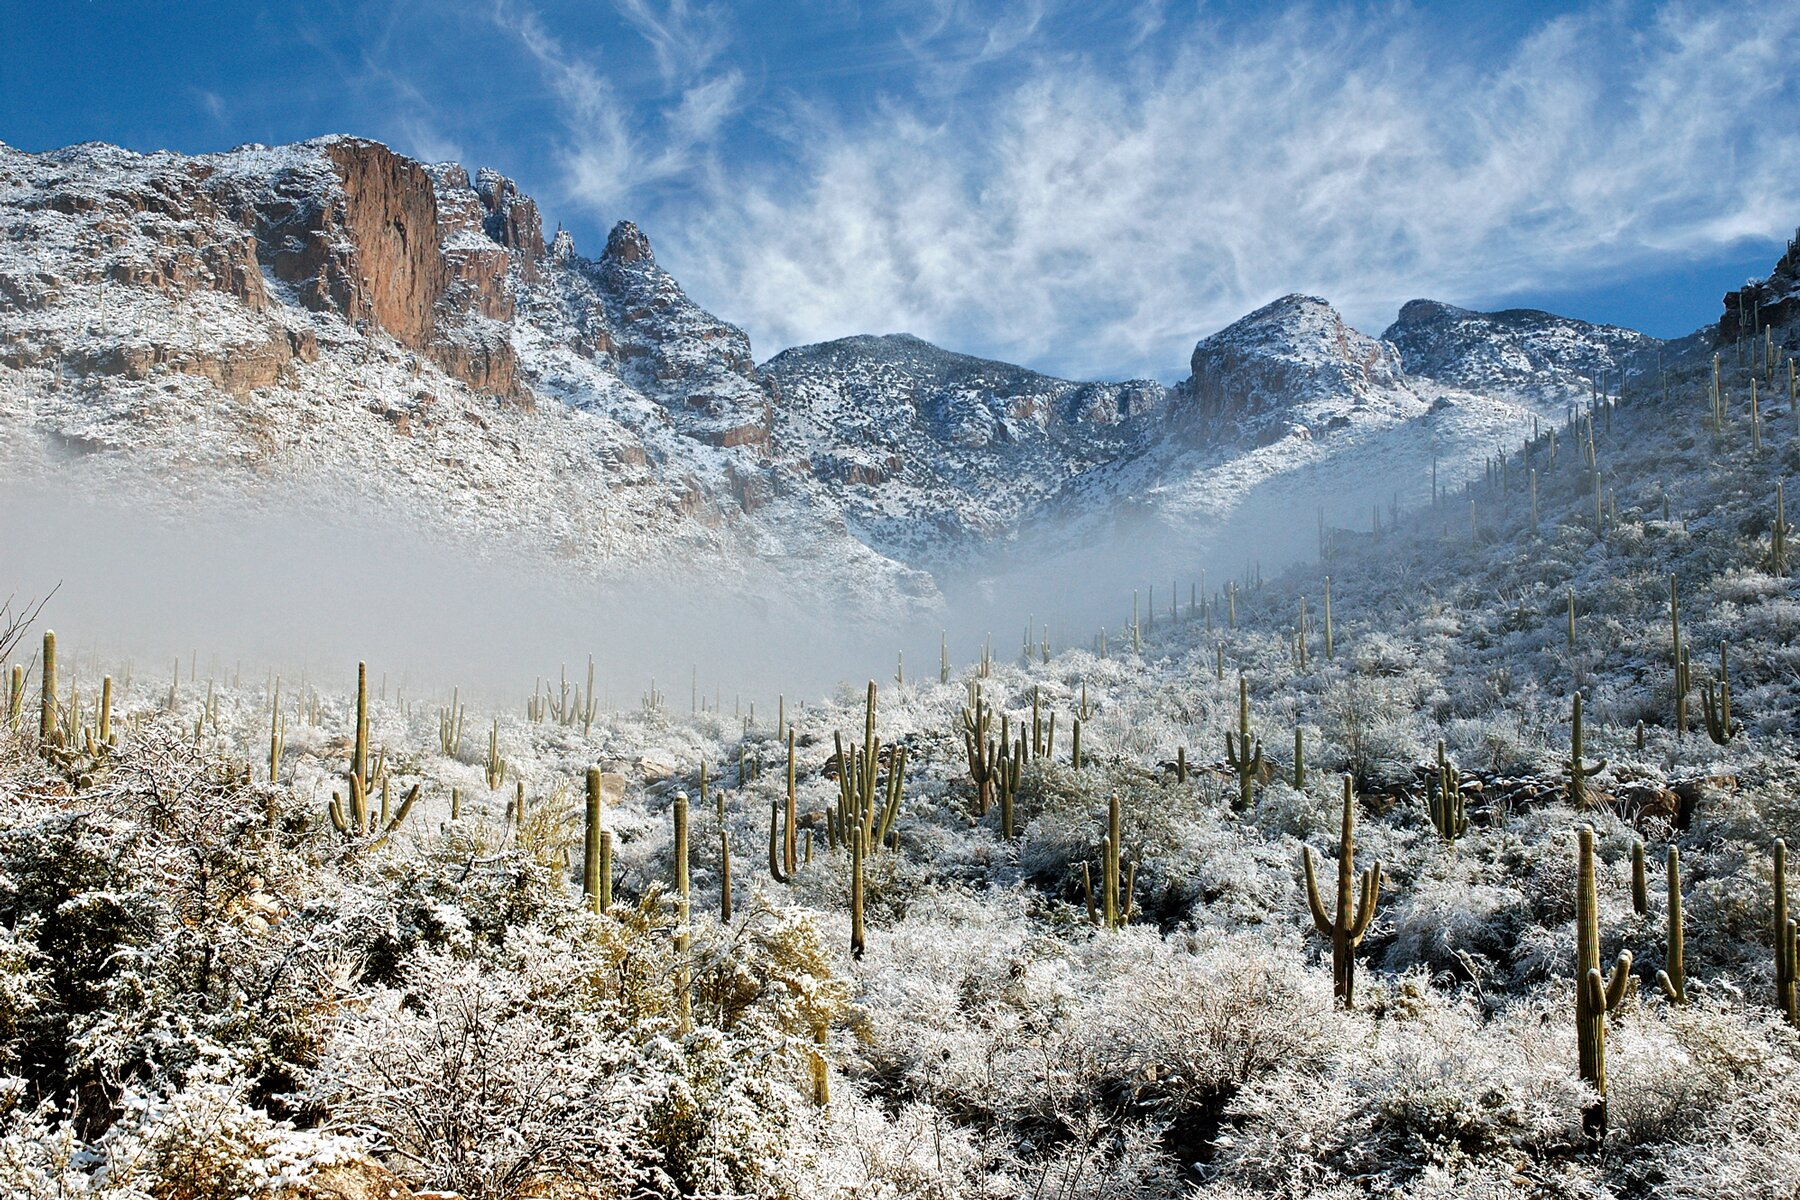 Snowfall on cactus and saguaros at Finger Rock in Tucson, Arizona.